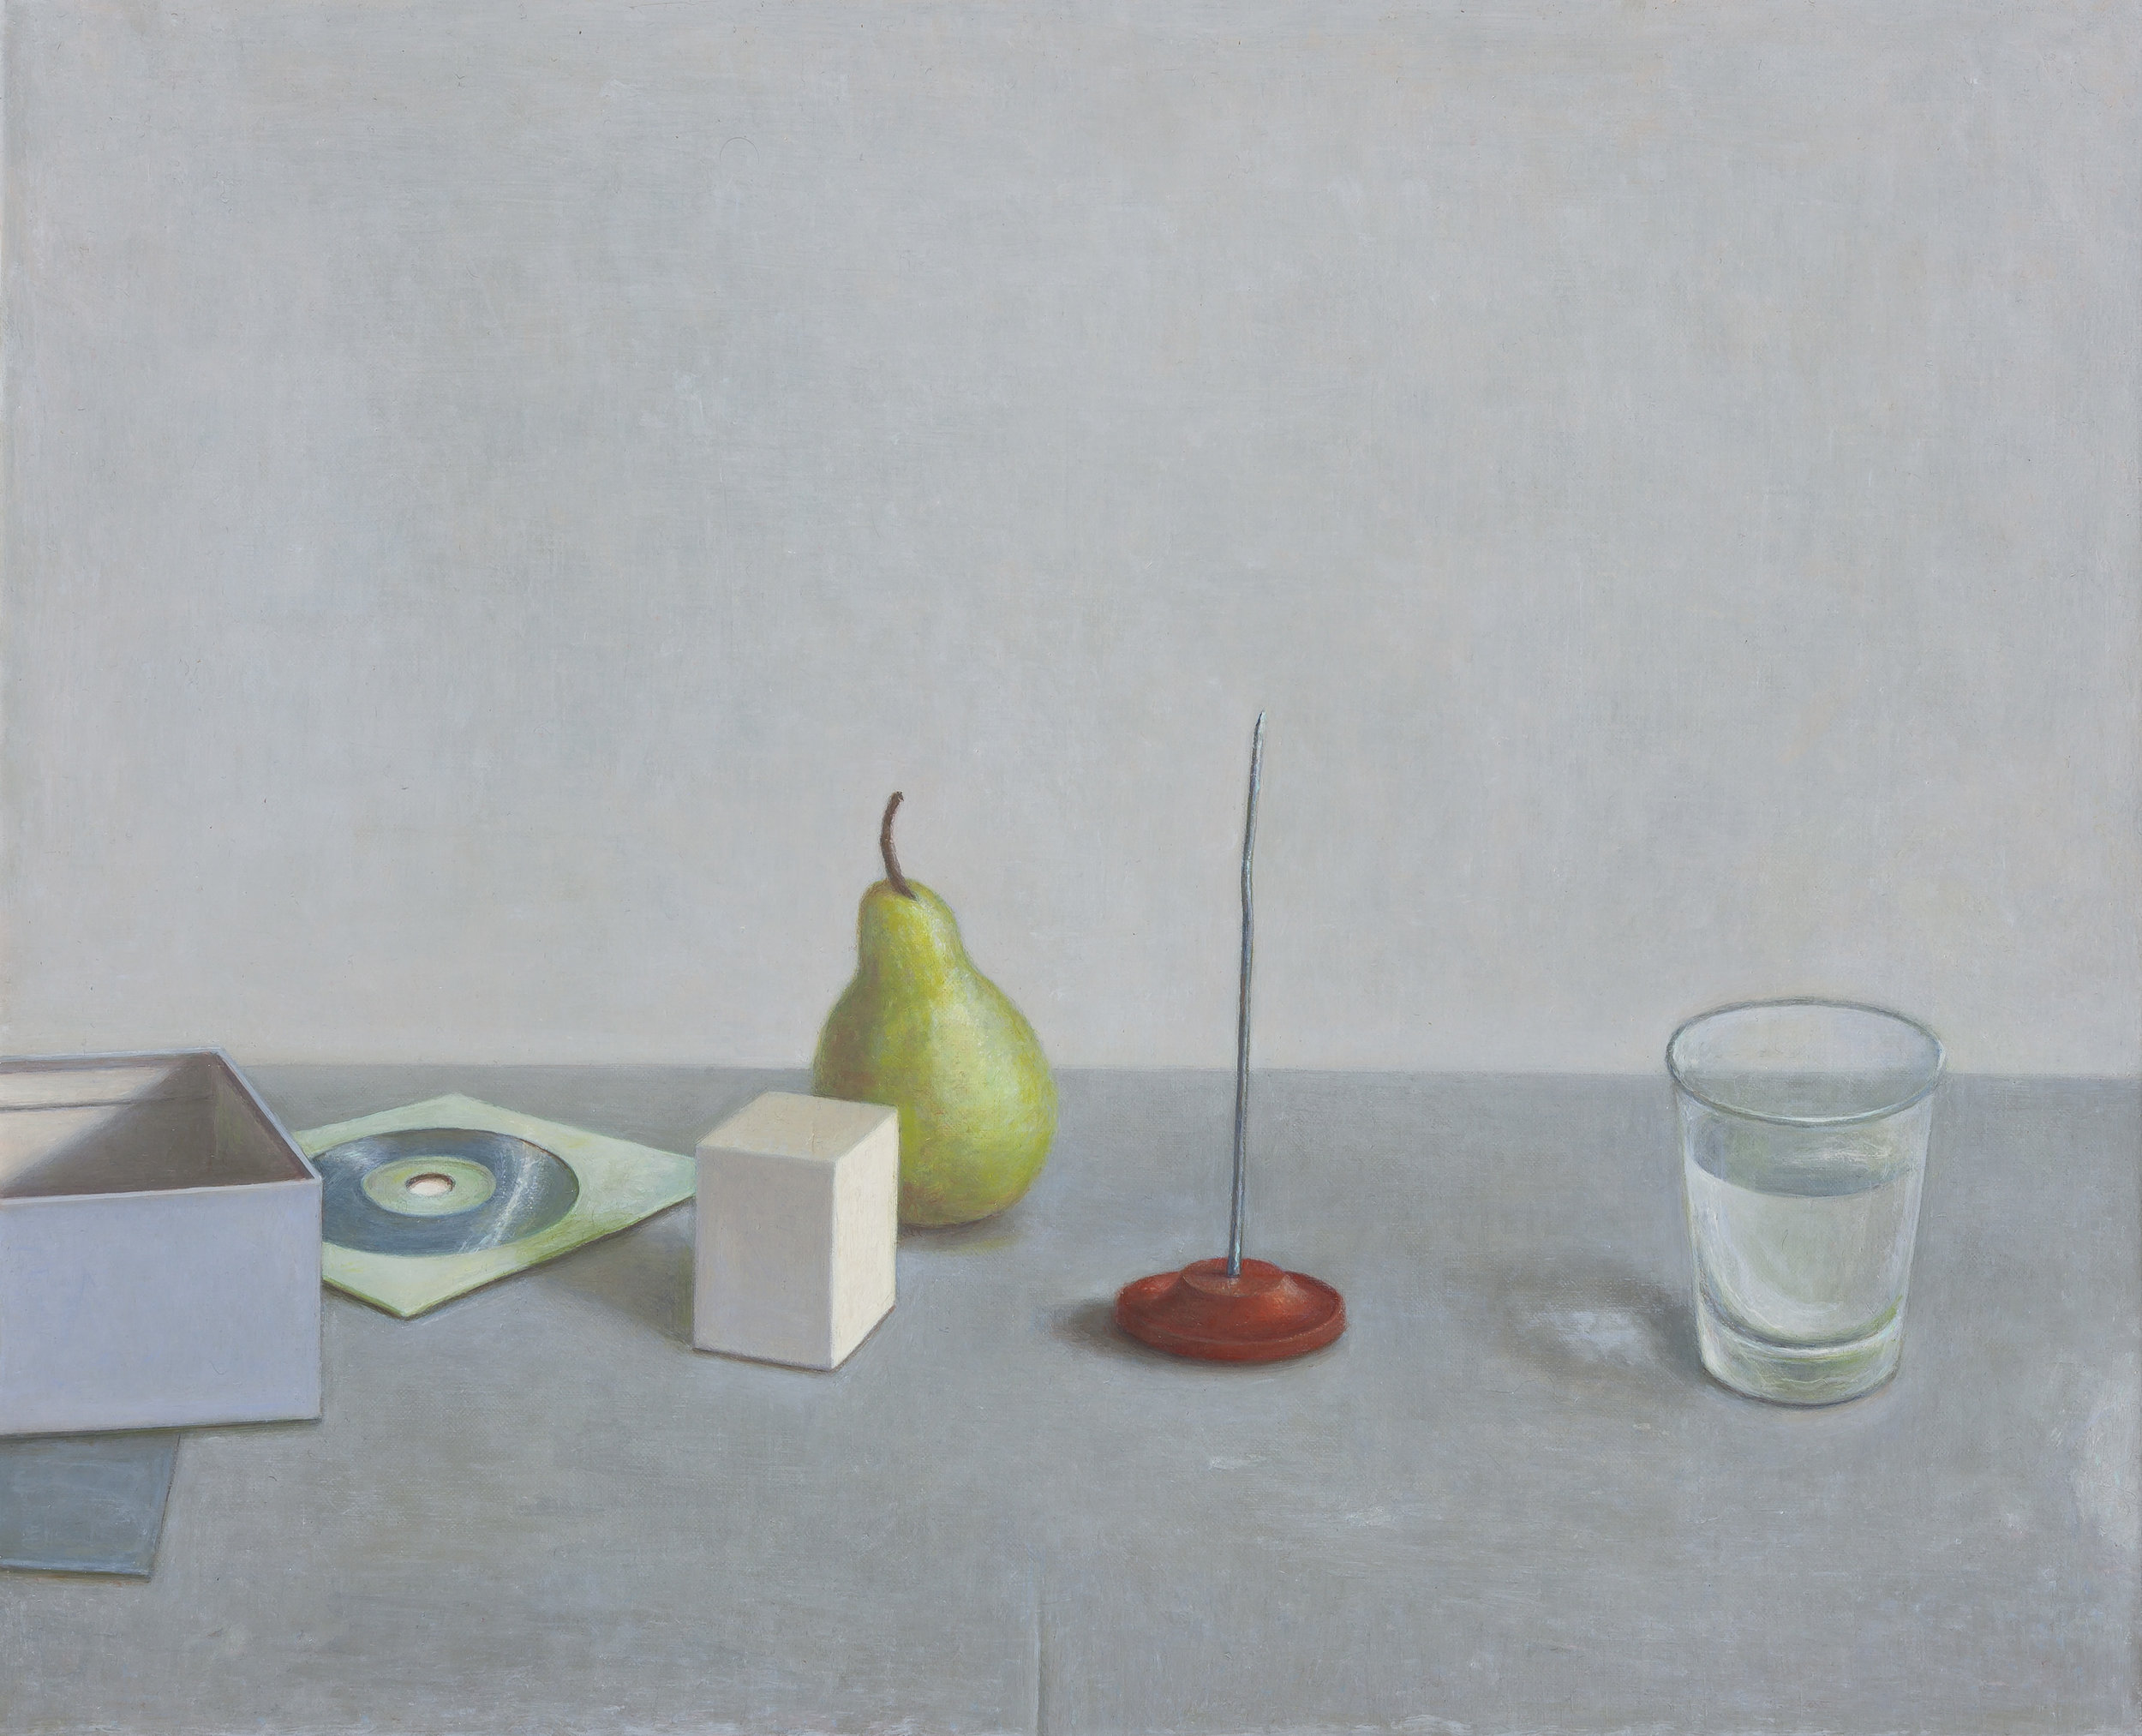 Still Life with Pear and Spike  2016  Oil on linen 46 x 56cm $7,000